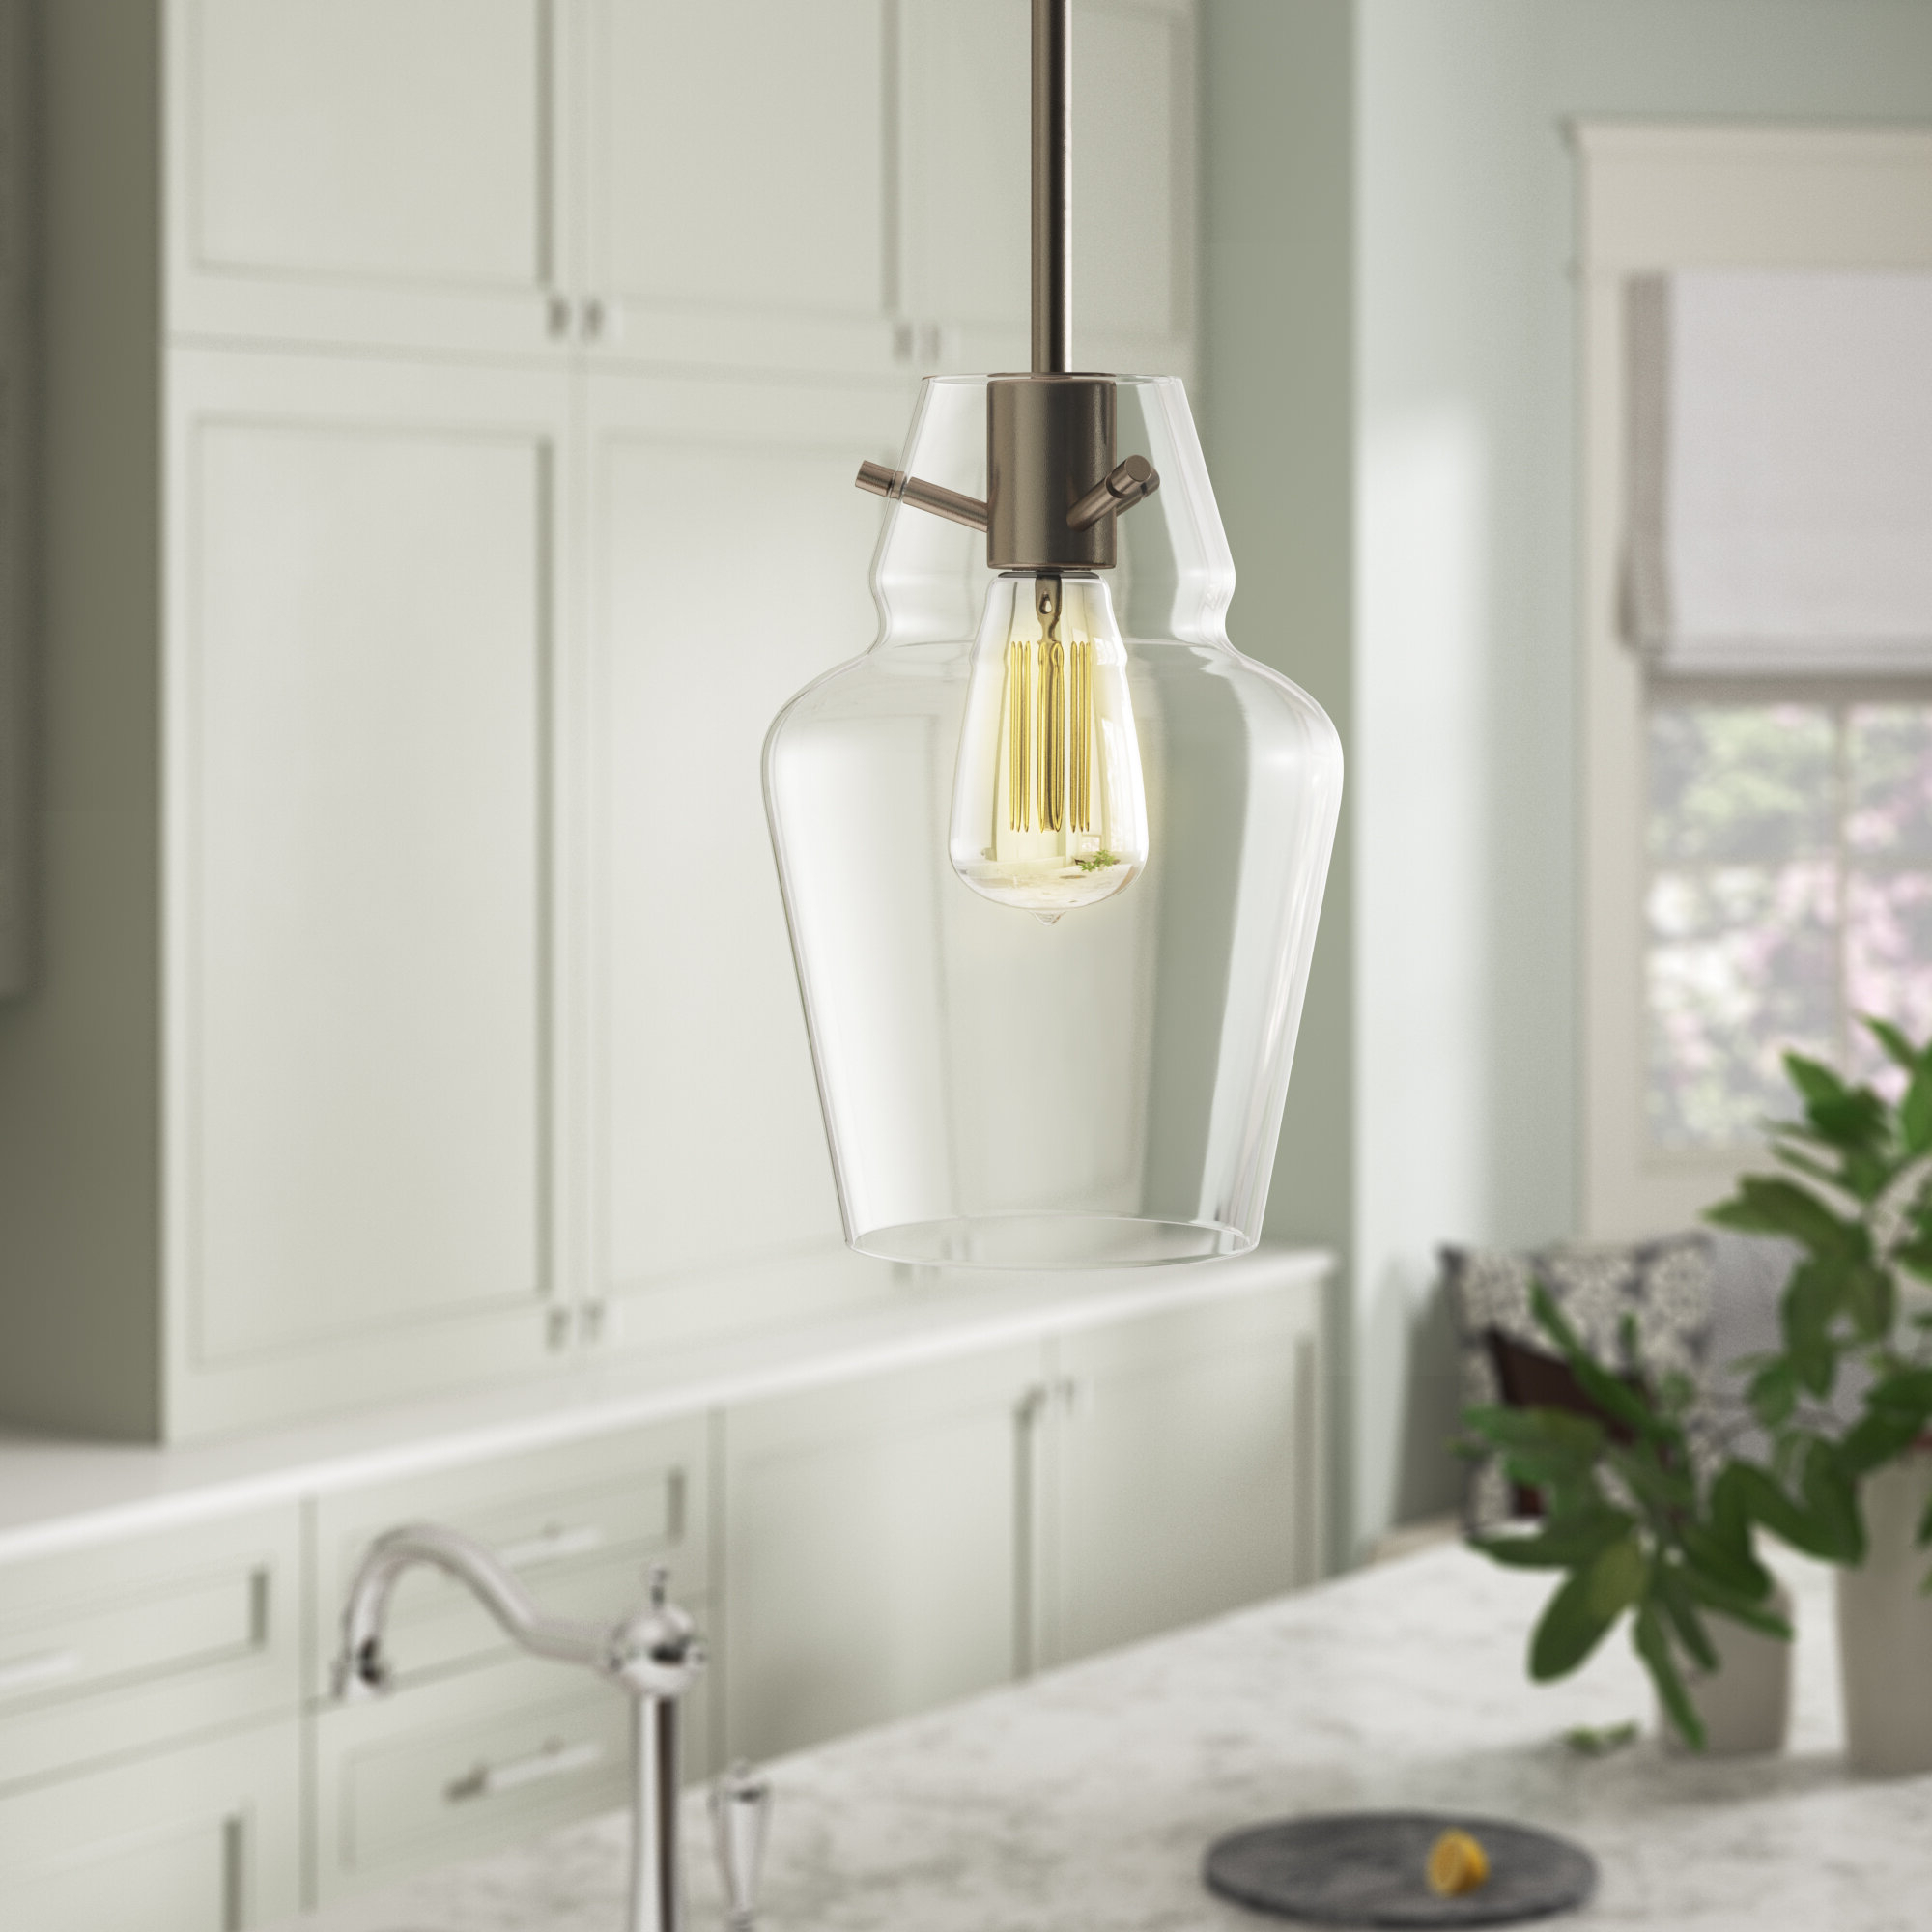 Well Known Roslindale 1 Light Single Bell Pendants Regarding Roslindale 1 Light Single Bell Pendant (View 16 of 25)